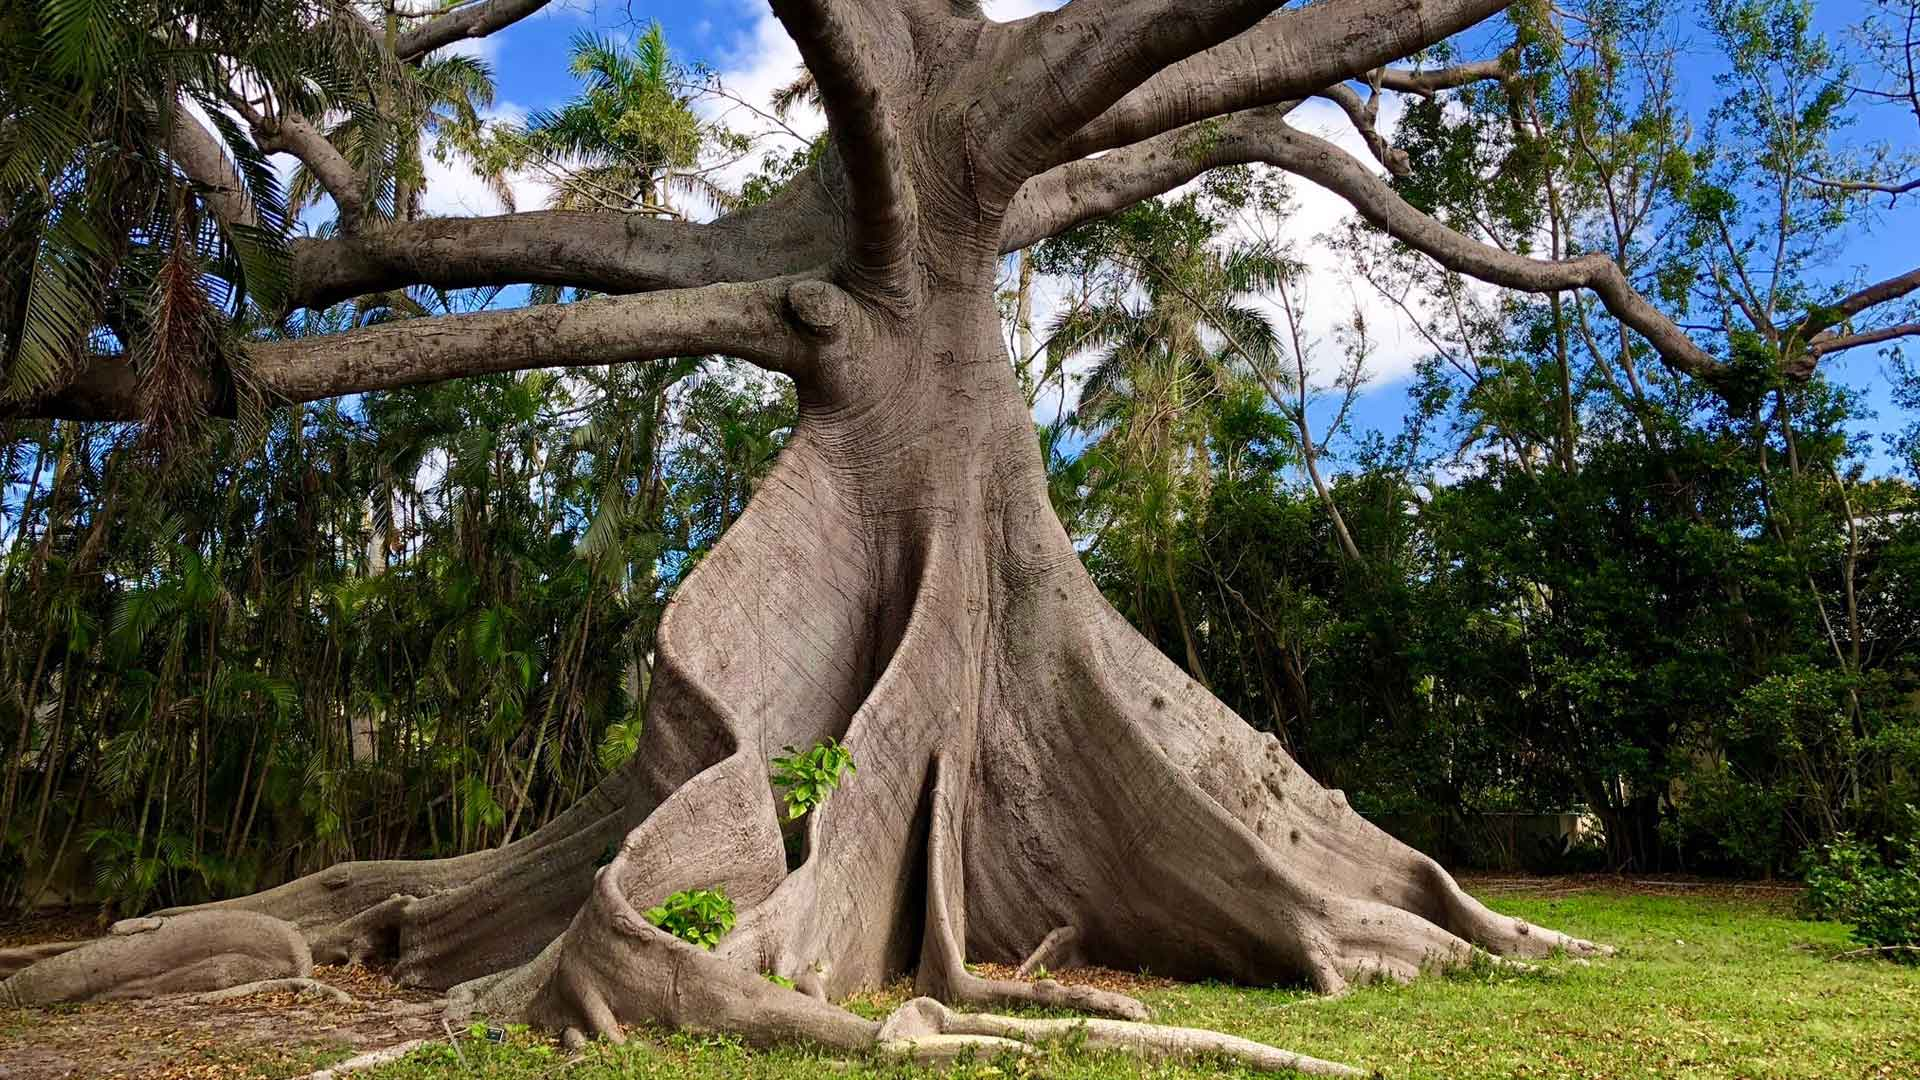 Large tree in the lawn of a residential property in Palm Beach, FL.